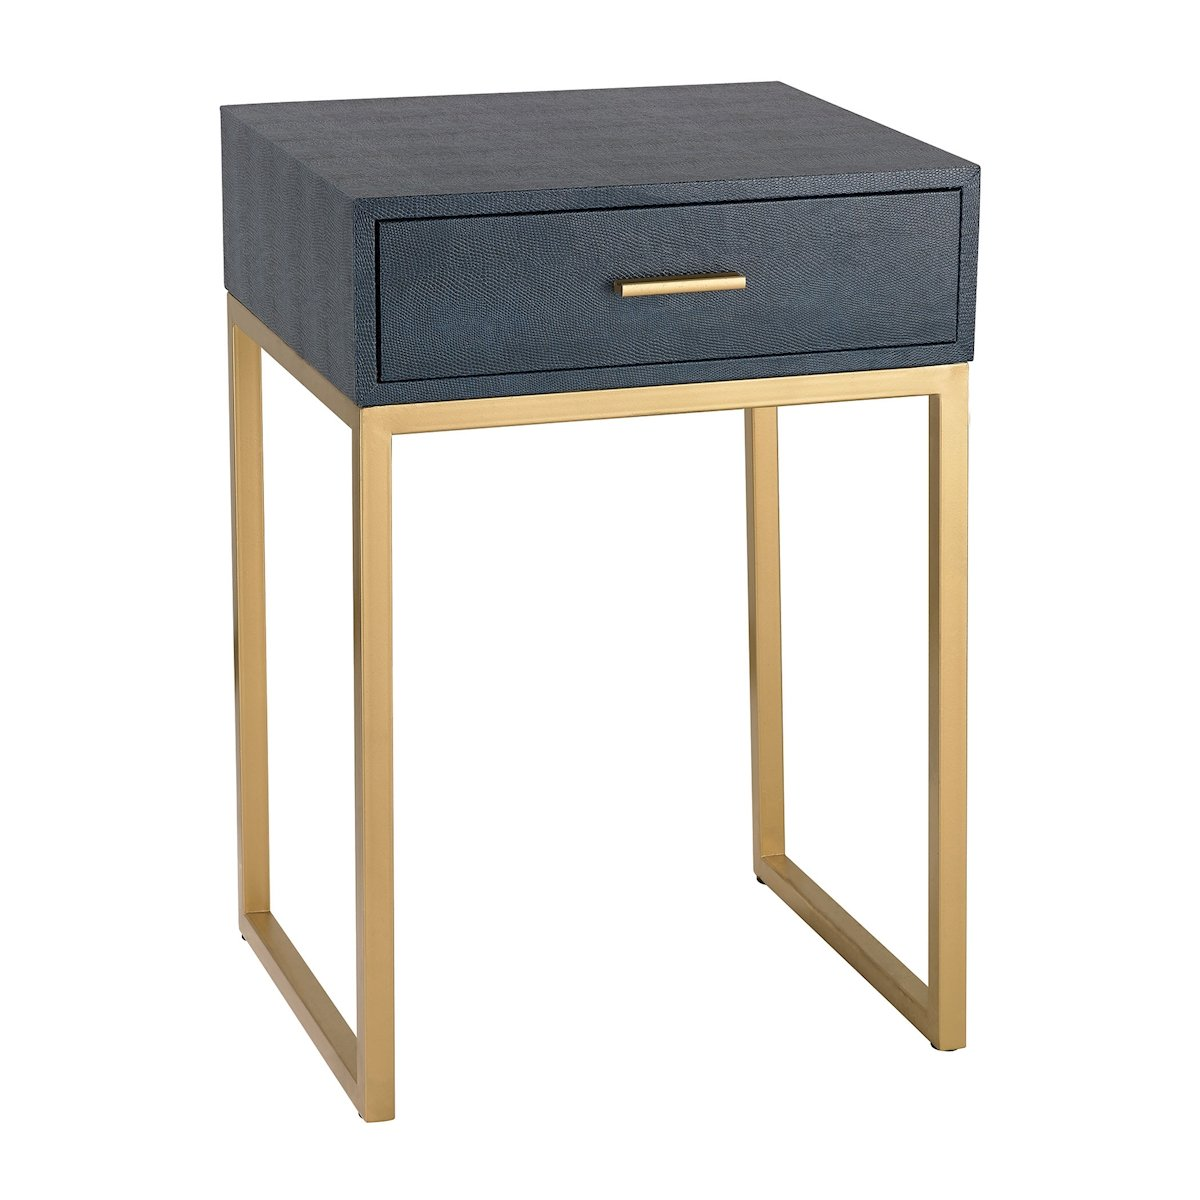 Sterling Industries Shagreen Side Table in Navy Finish